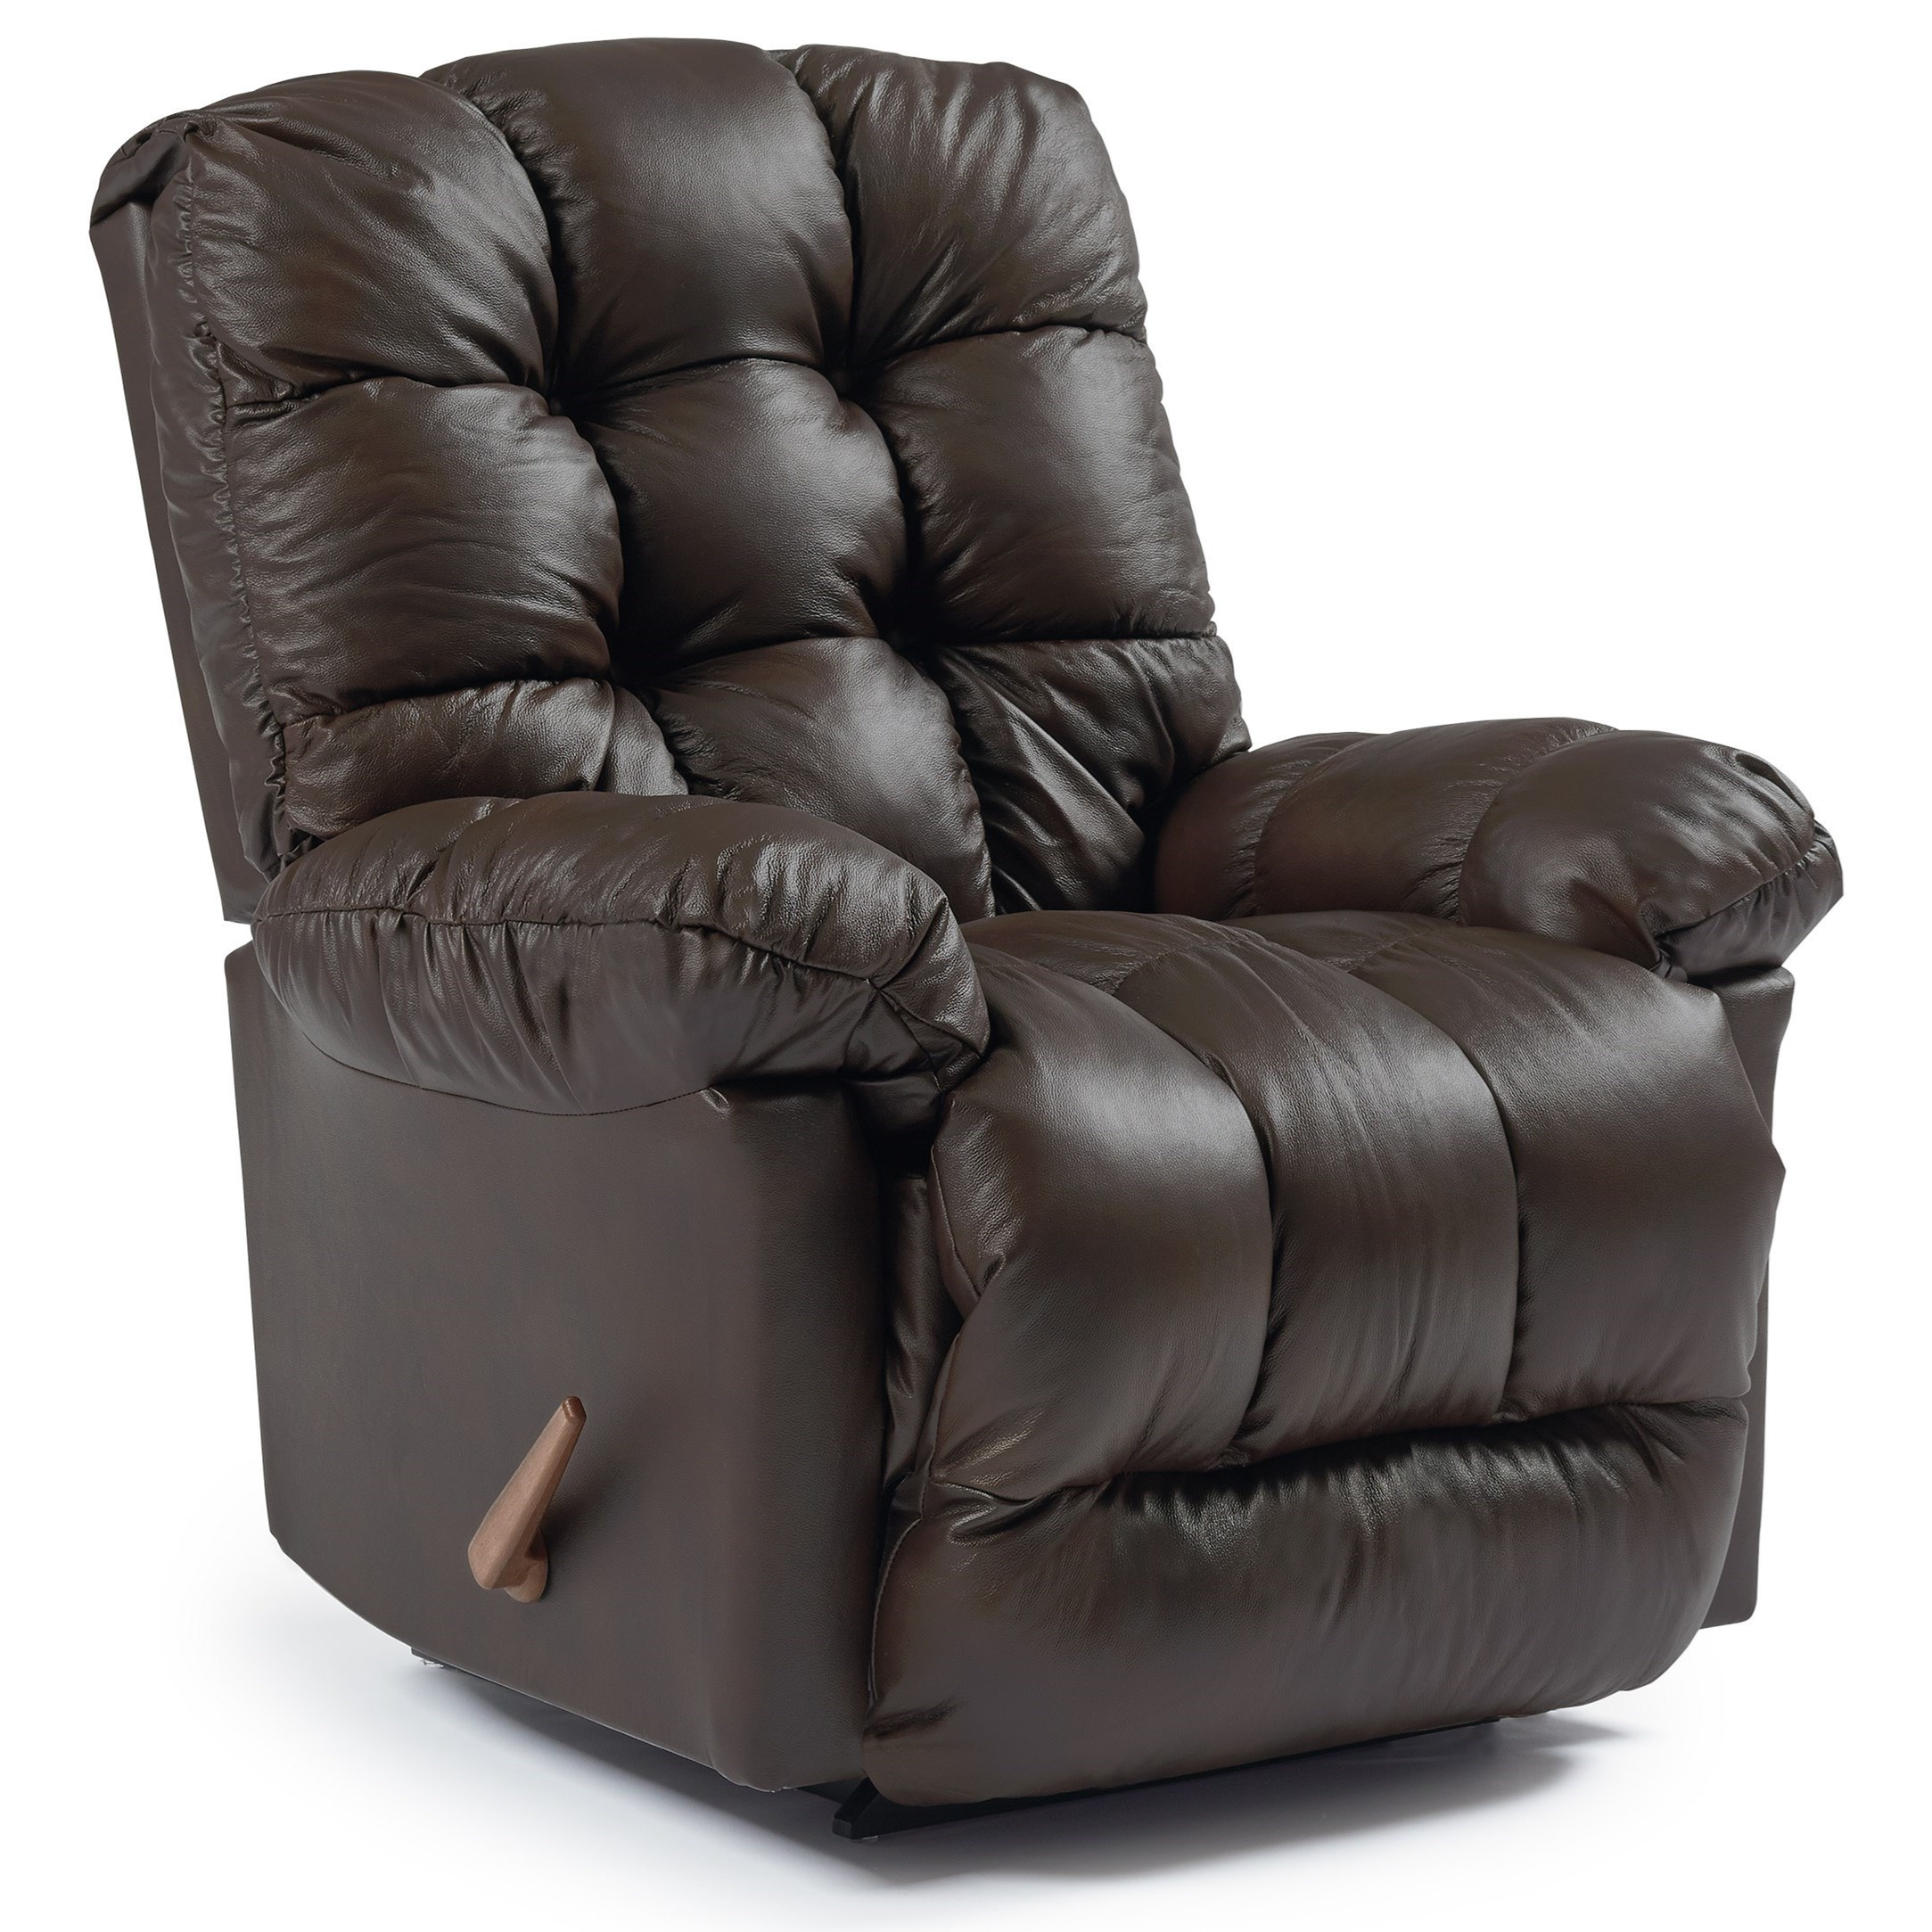 swivel reclining chairs for living room decorate modern style best home furnishings medium recliners 9mw85 1lv brosmer reclinersbrosmer glider recliner